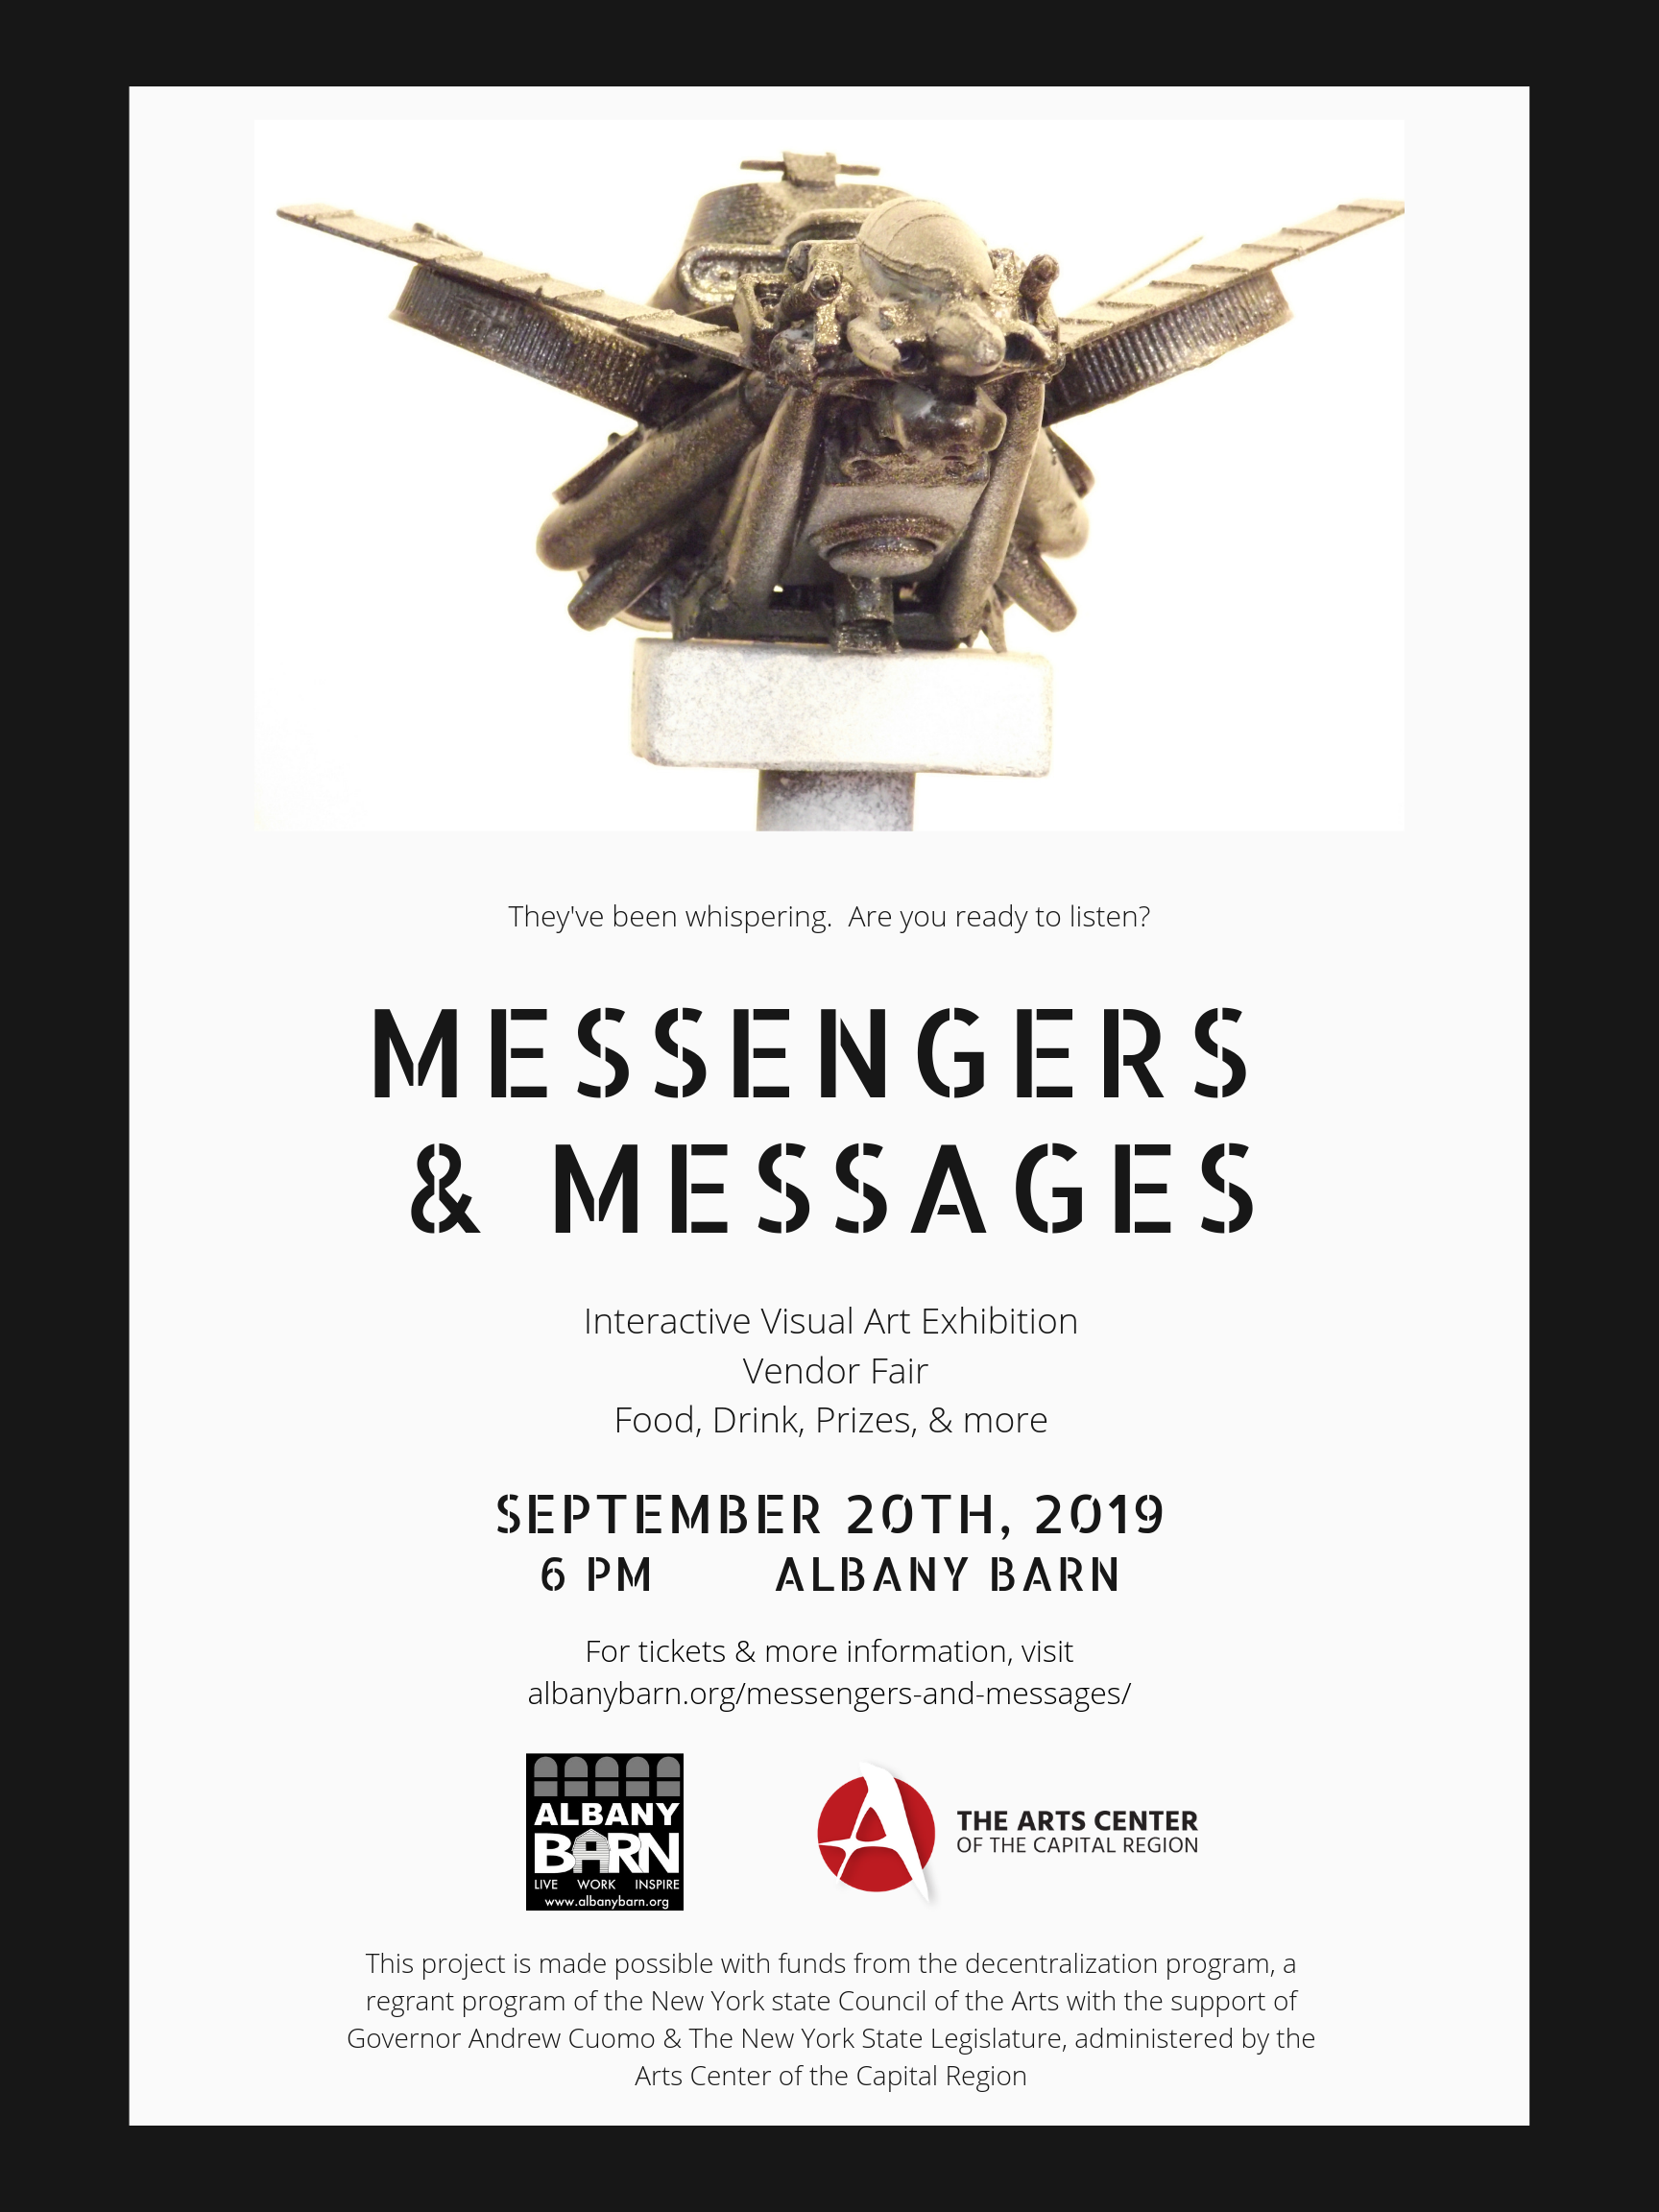 Announcing MESSENGERS & MESSAGES Interactive Visual Art Exhibition